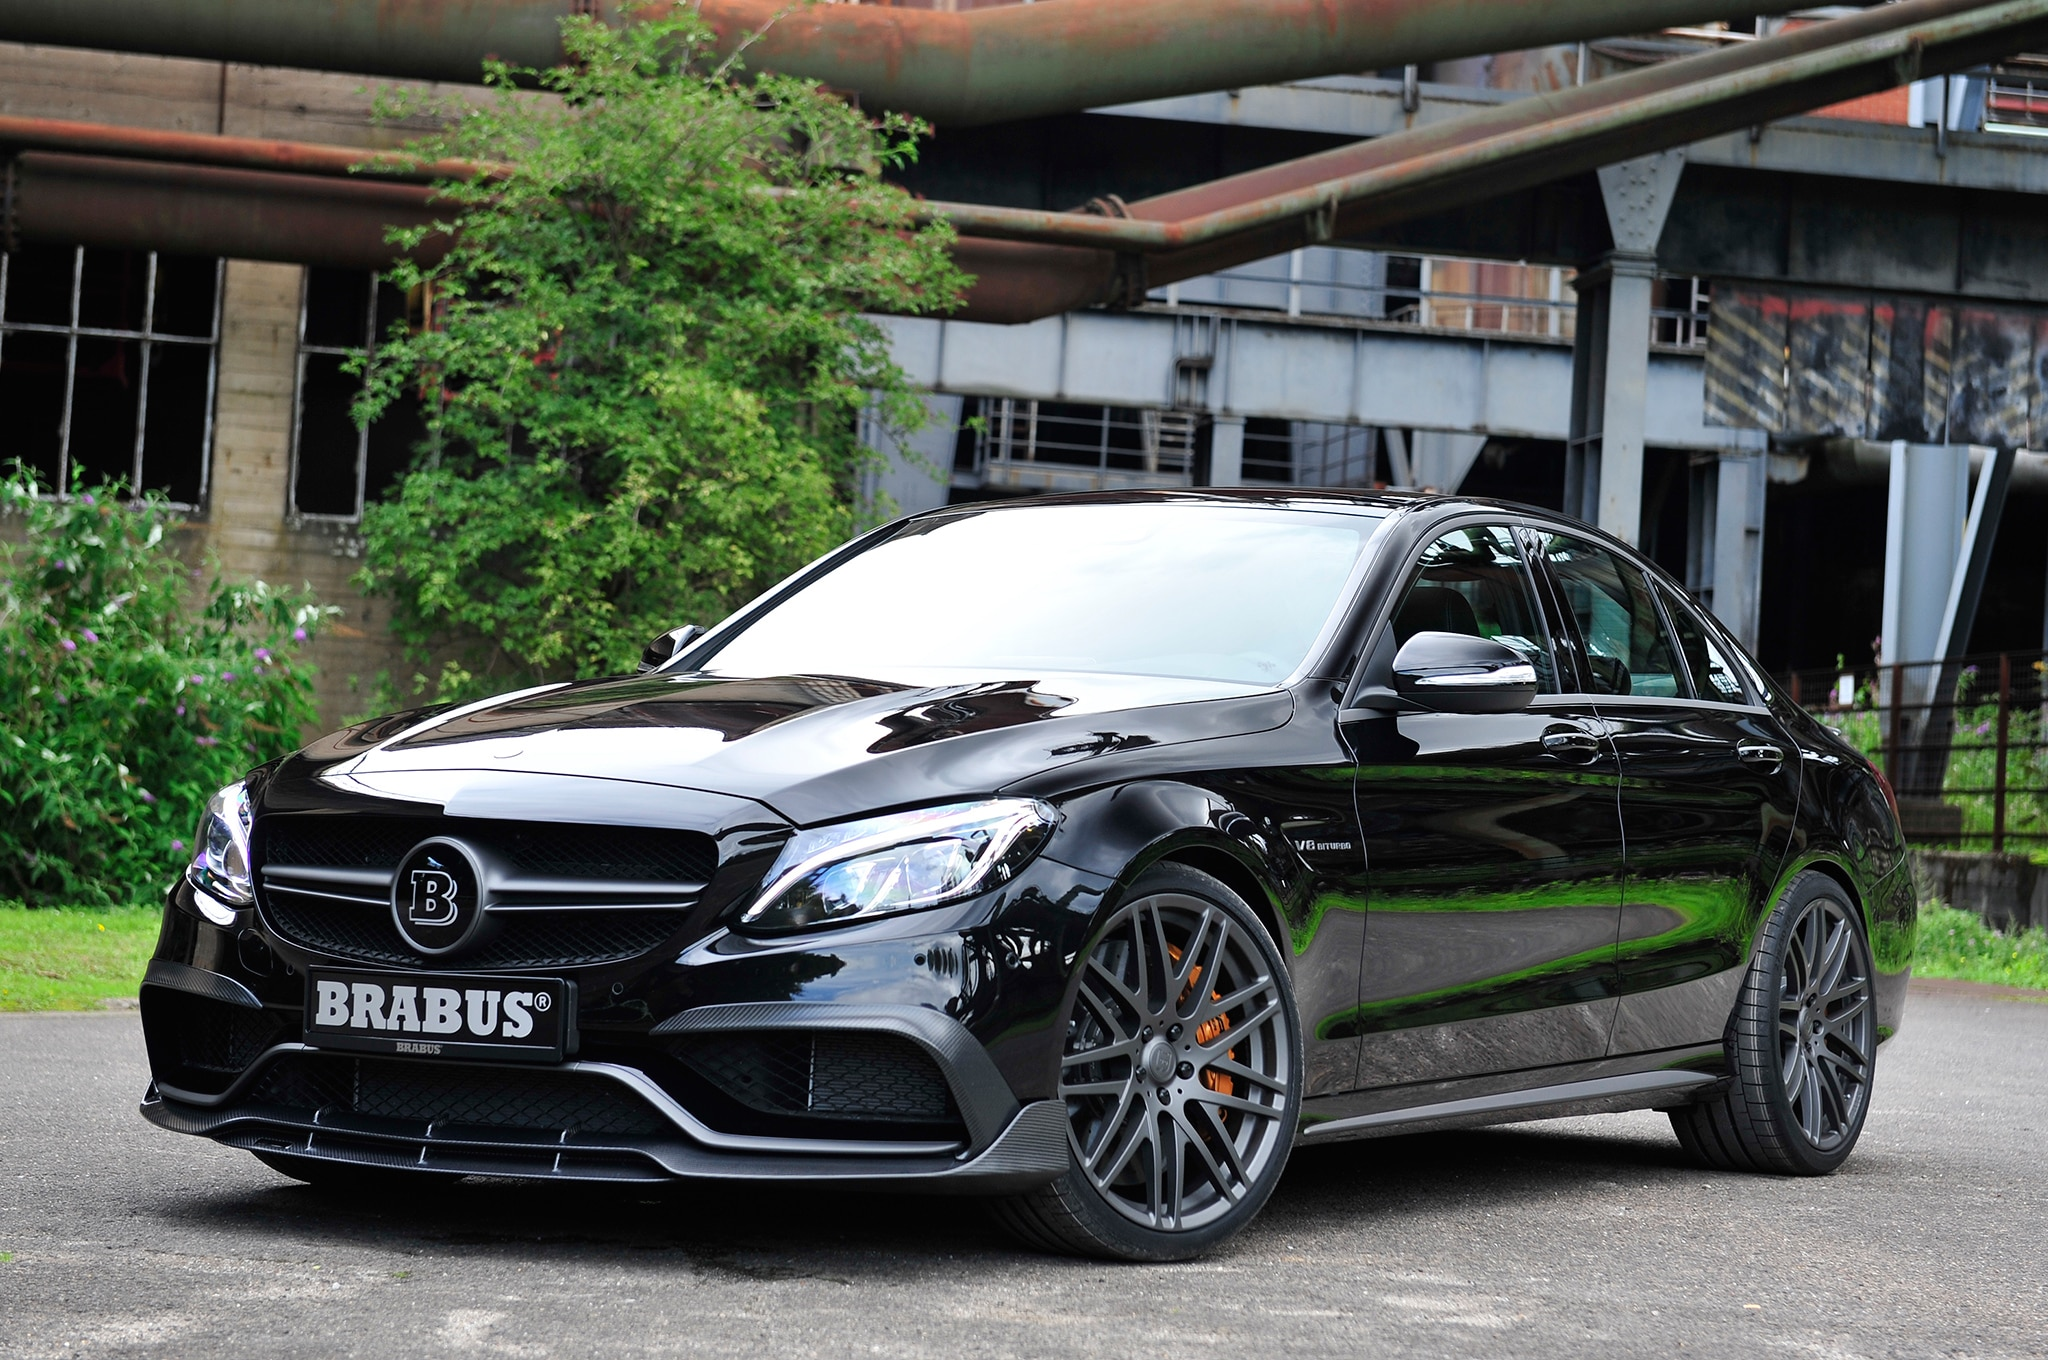 brabus cranks the mercedes amg c63 s up to 591 hp2 9